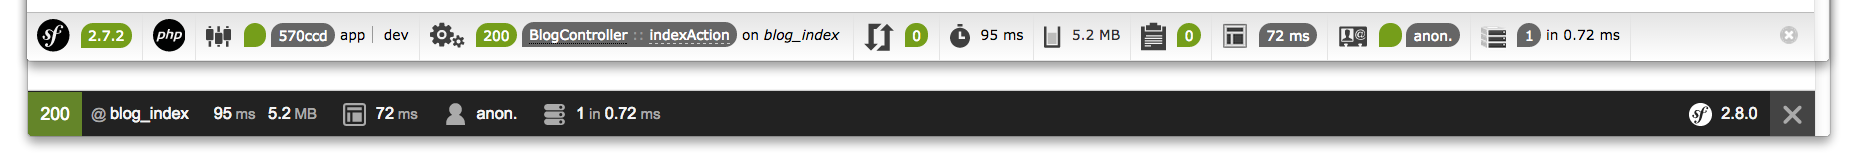 Symfony 2.8 toolbar space differences